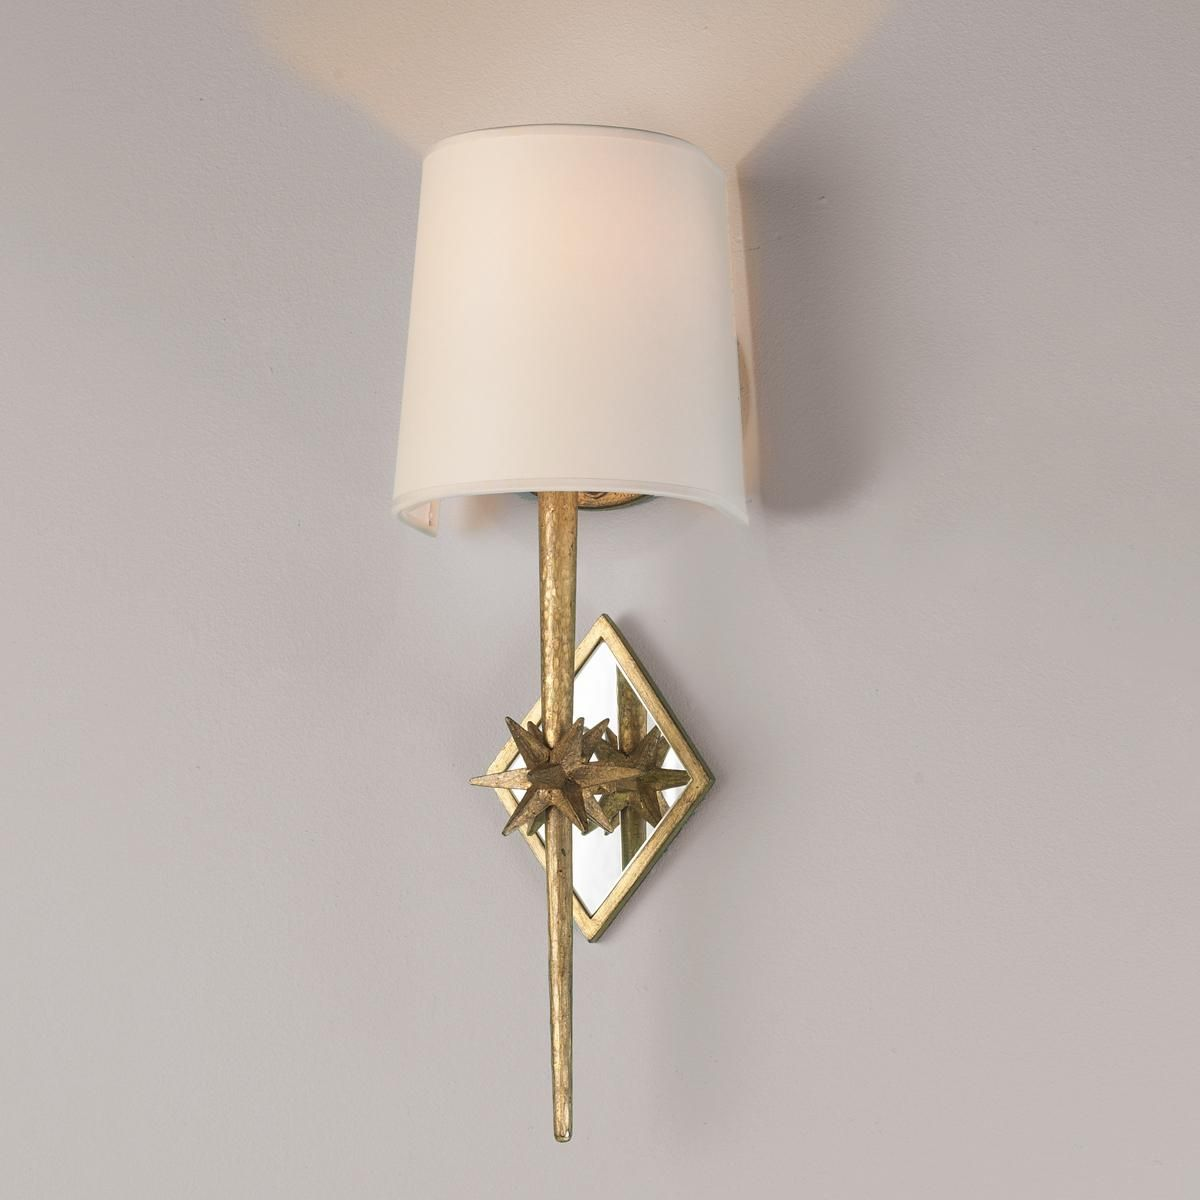 Lighting Wall Plates Star Of The Show Wall Sconce  1 Light  Wall Sconces Powder Room